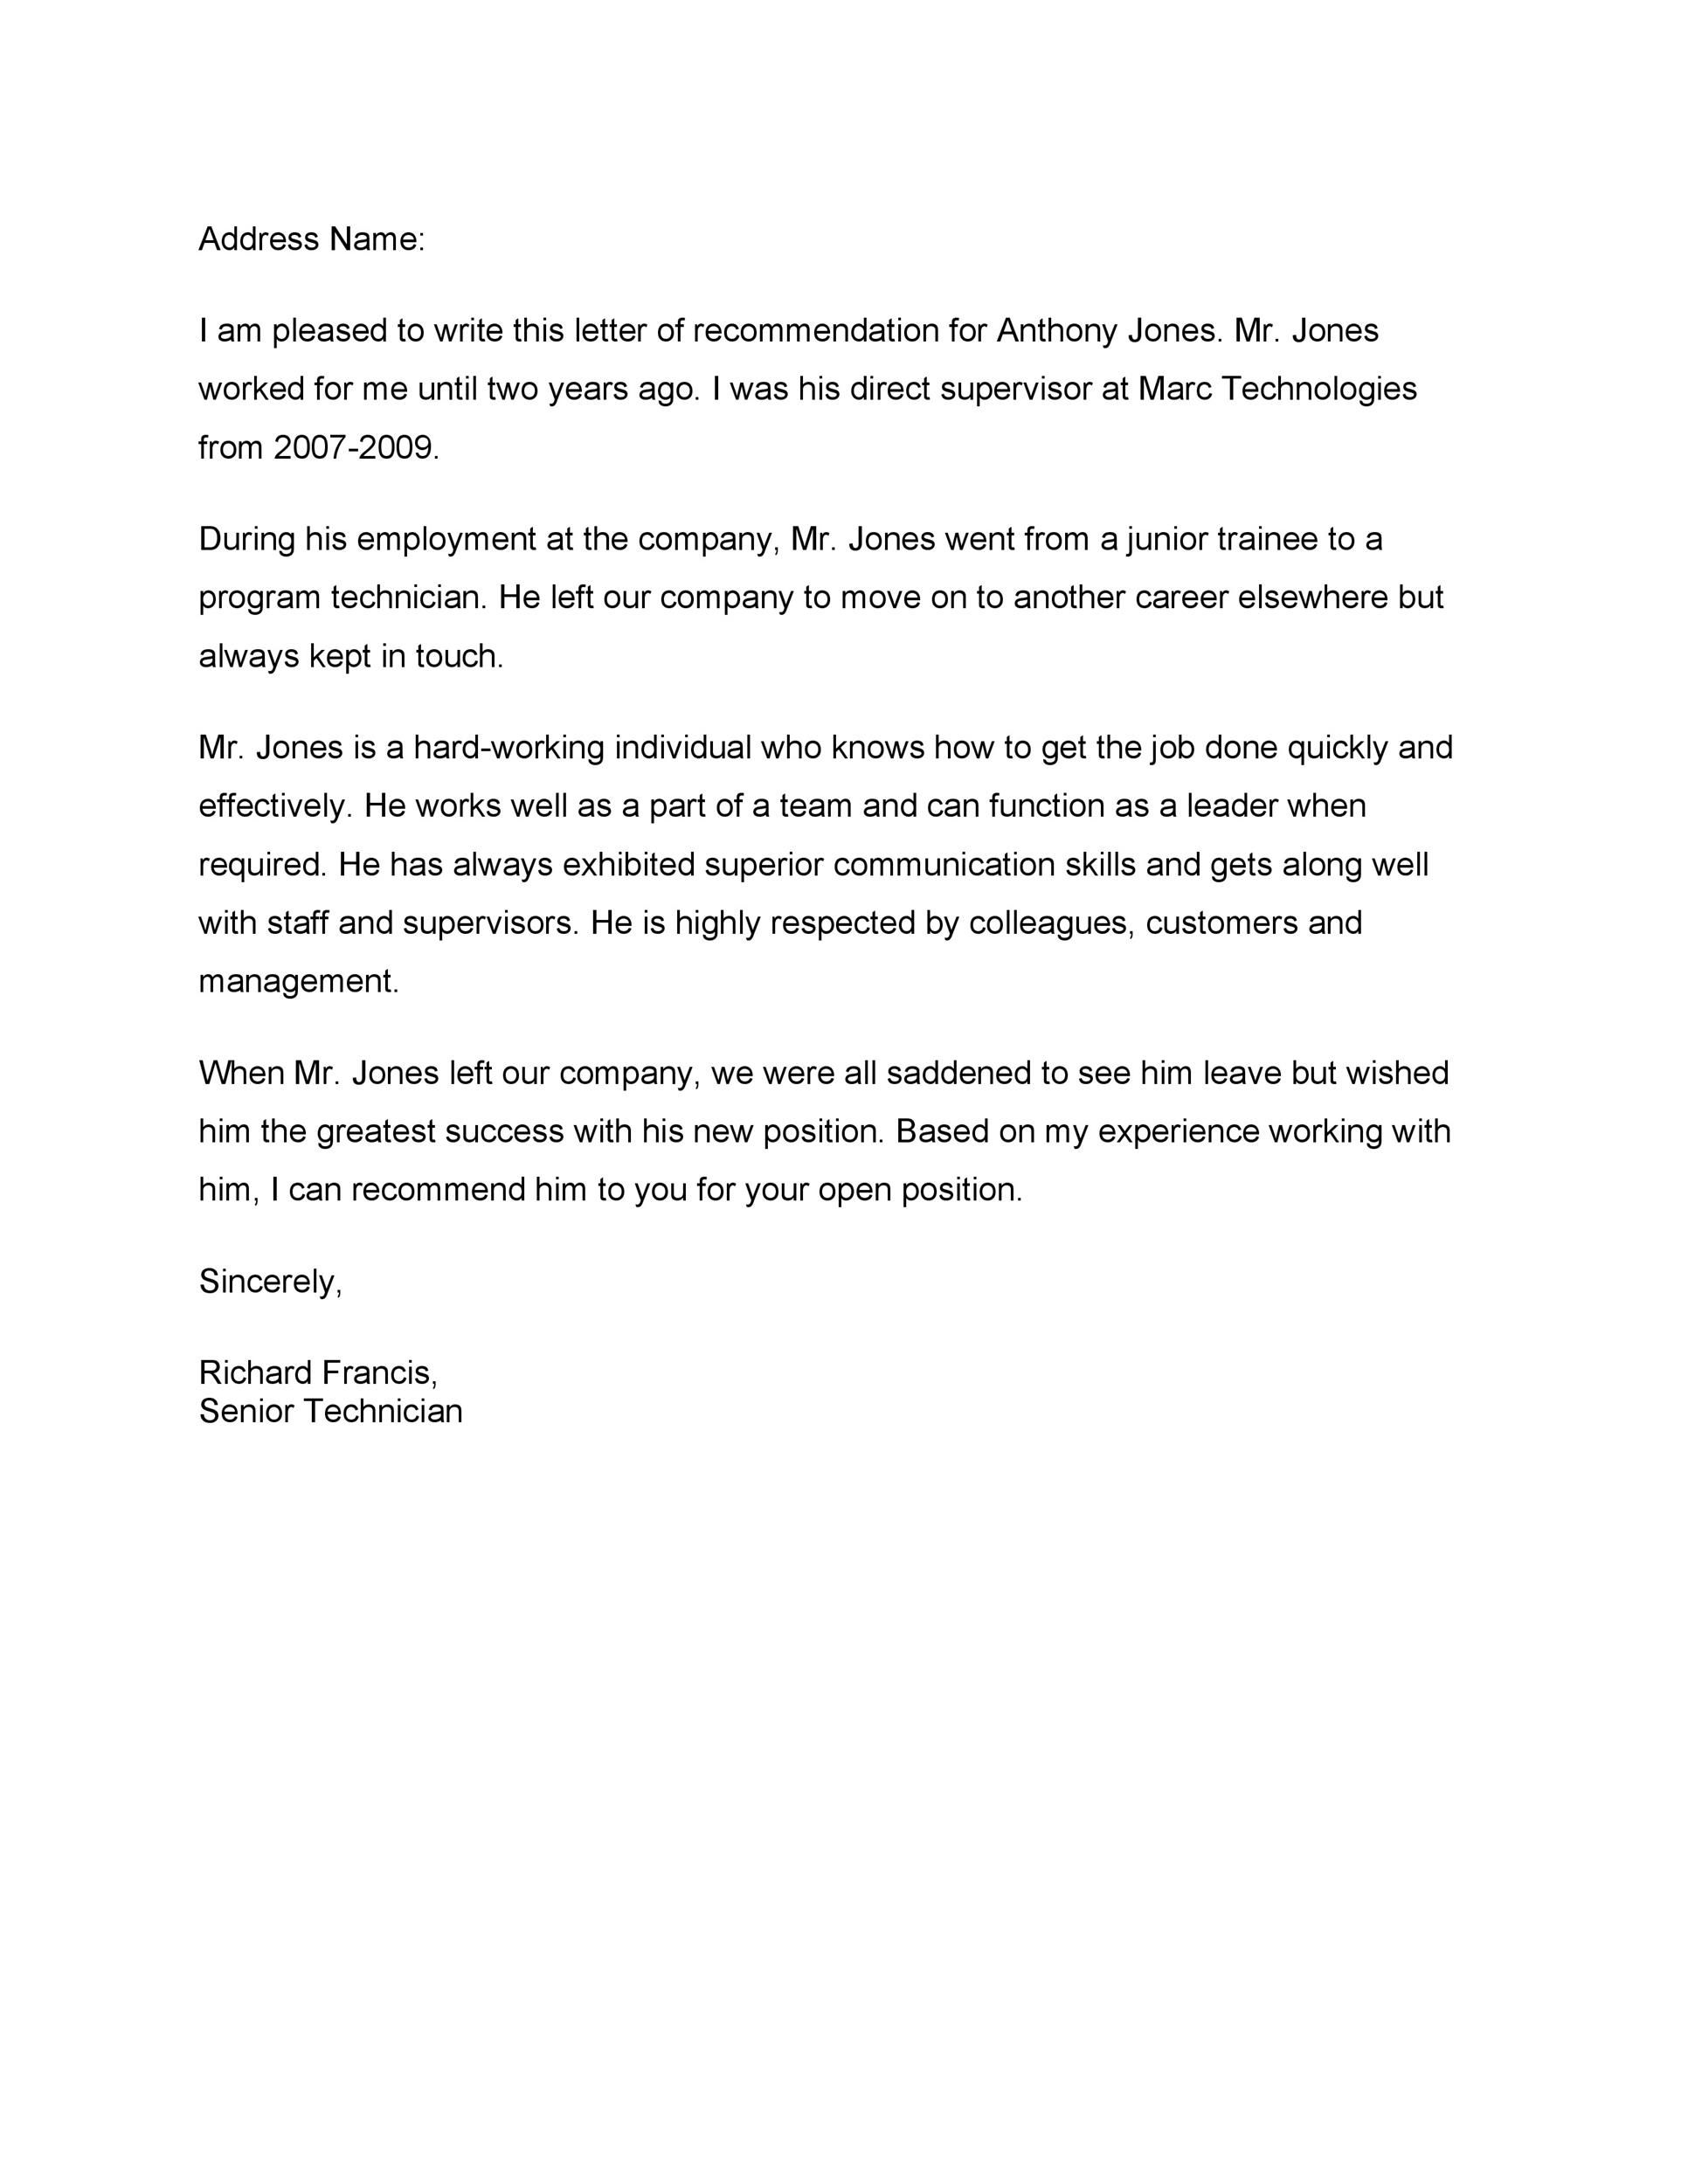 Recommendation Letter Template For Job from www.addictionary.org